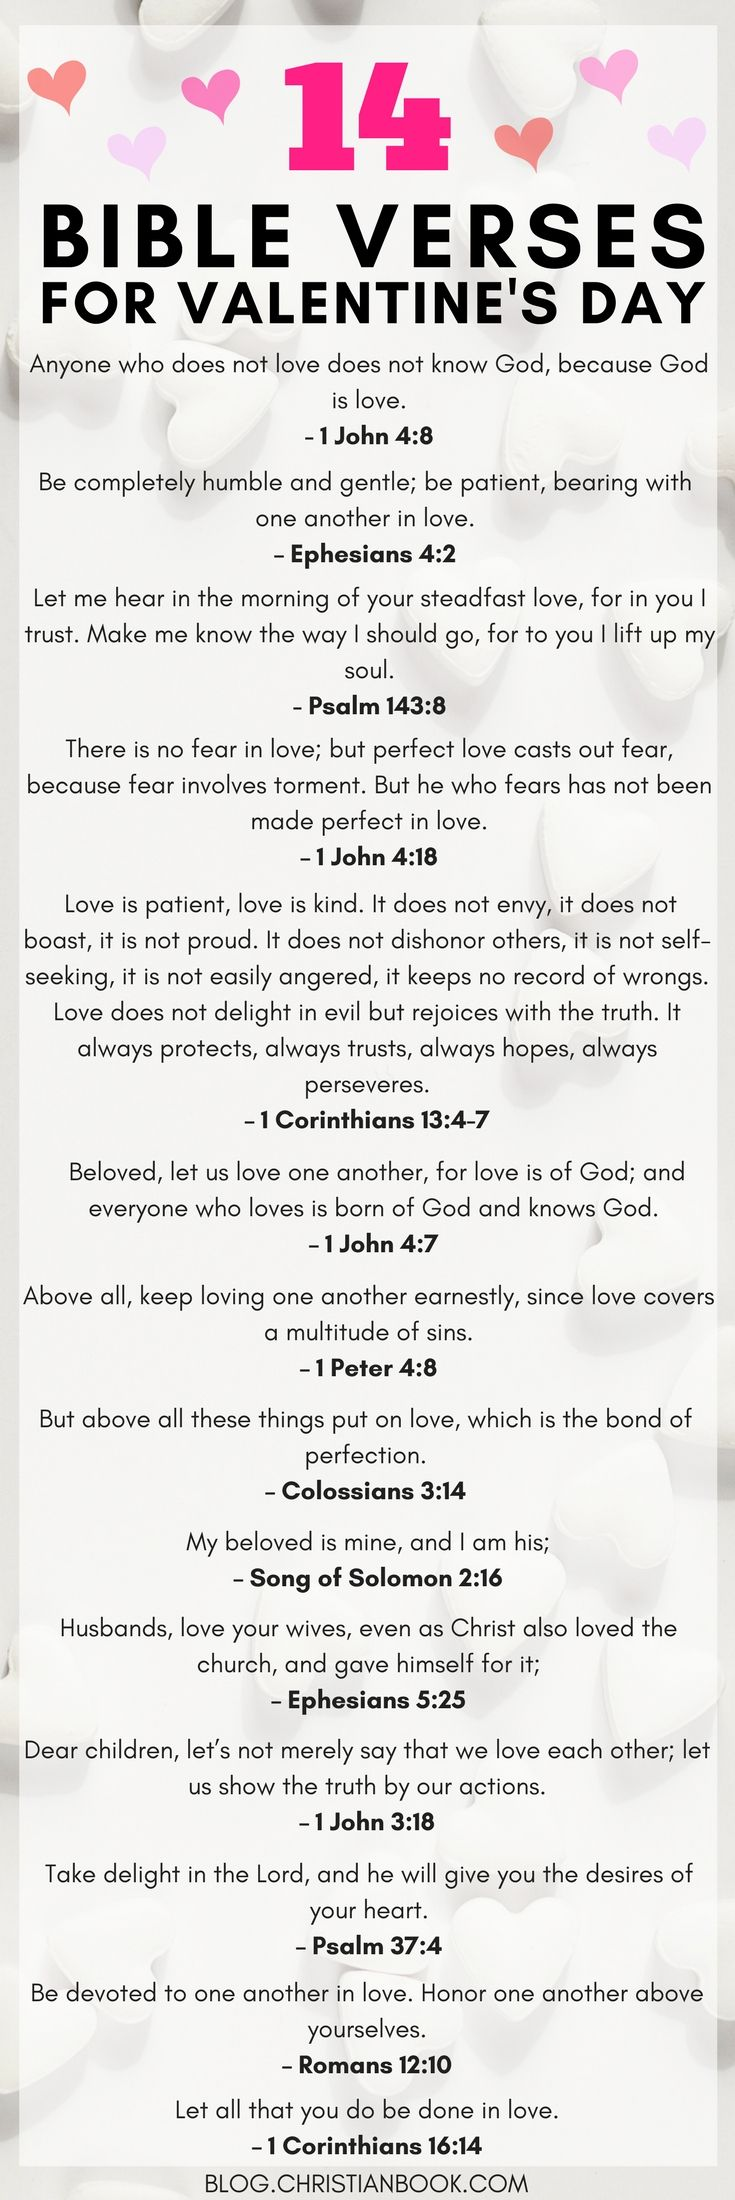 No matter what your relationship status, these Bible verses are perfect for celebrating Valentine's Day.